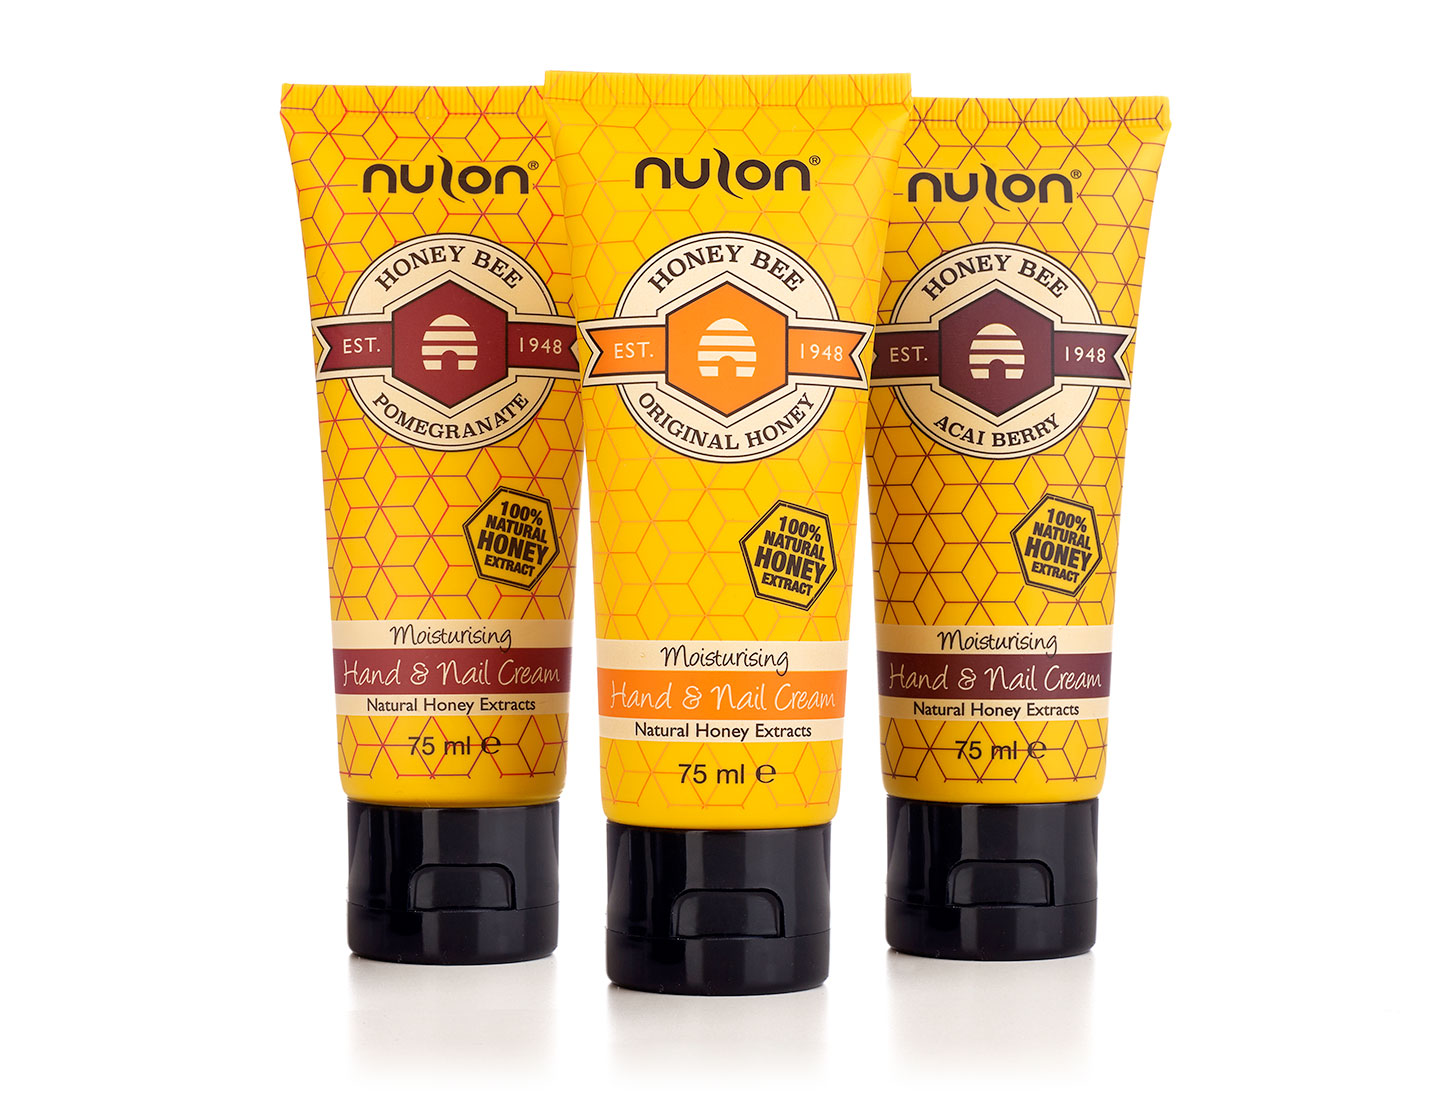 Nulon Honey Bee